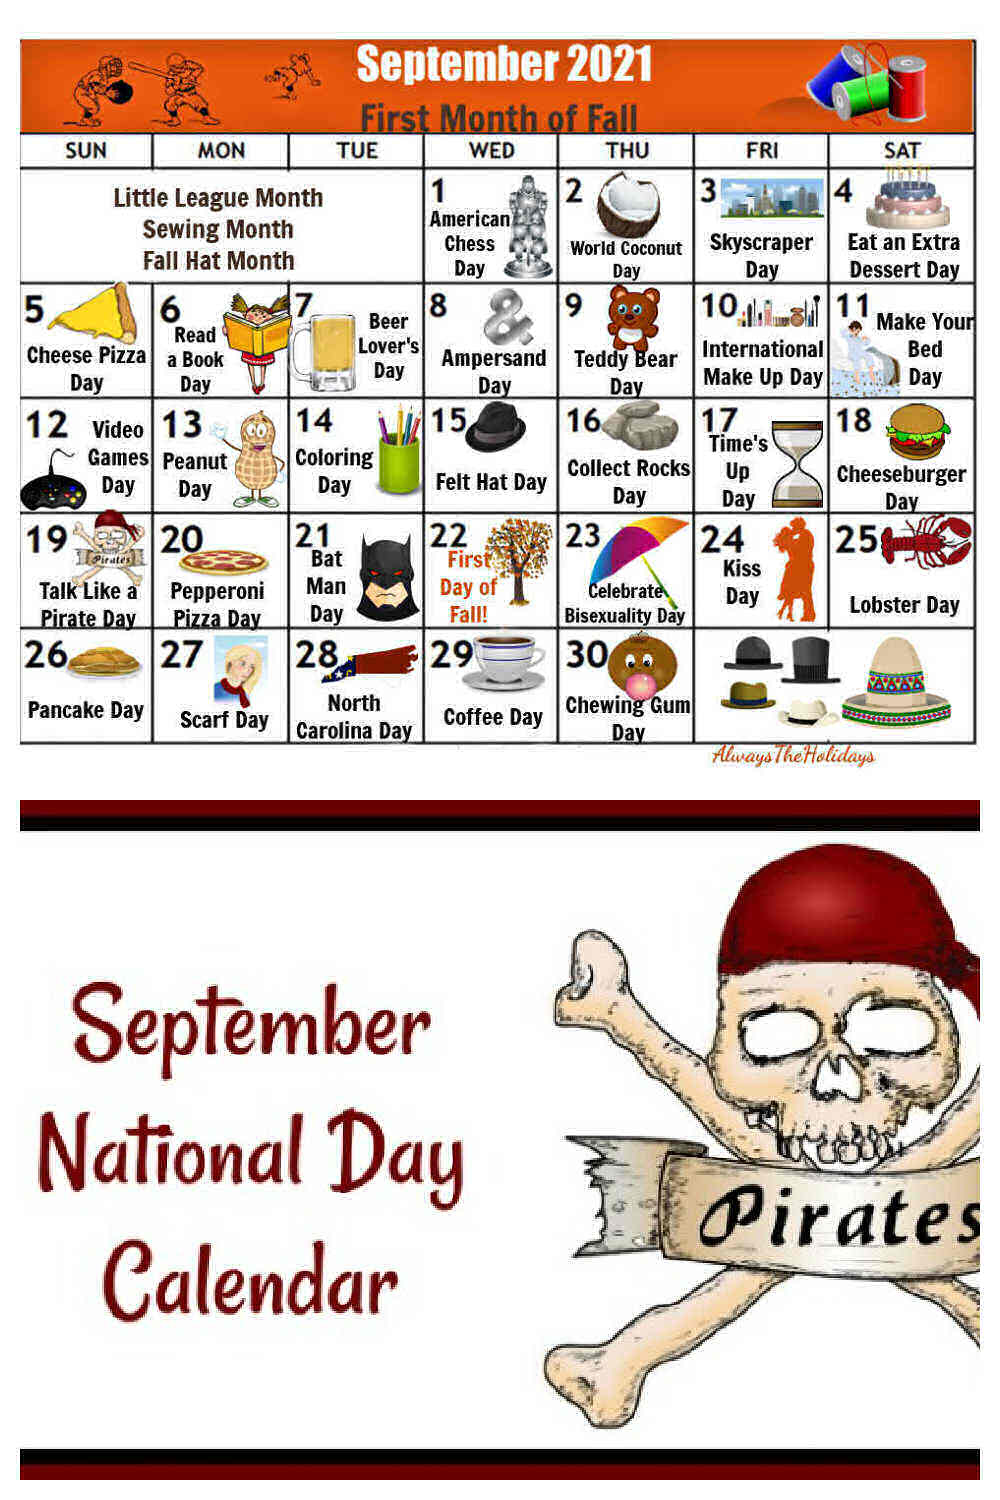 Pirate sign with words September National Day Calendar and calendar showing icons of national days.